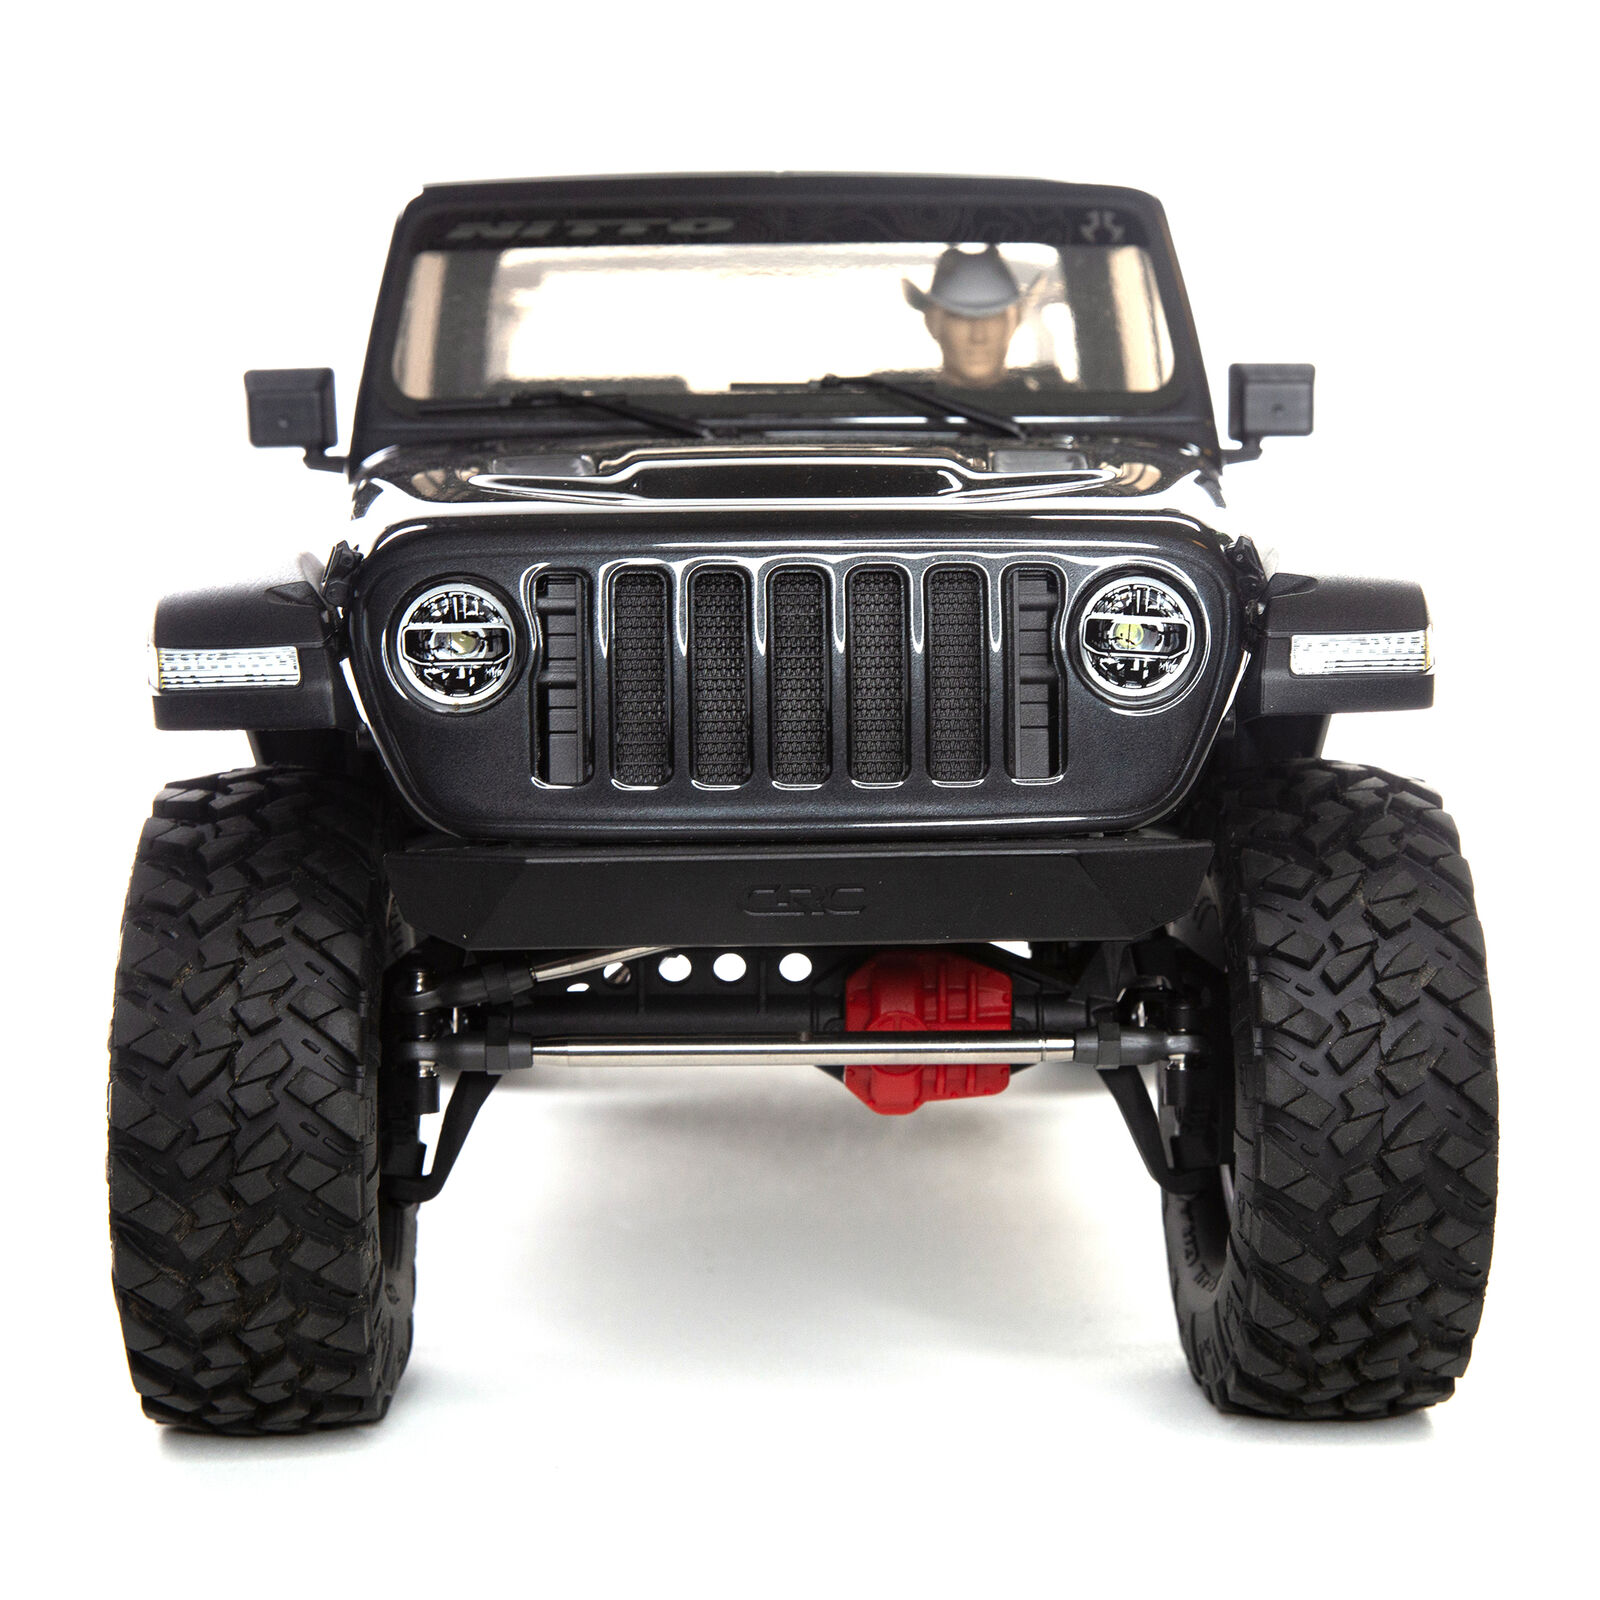 1/10 SCX10 III Jeep JT Gladiator Rock Crawler with Portals RTR, Gray